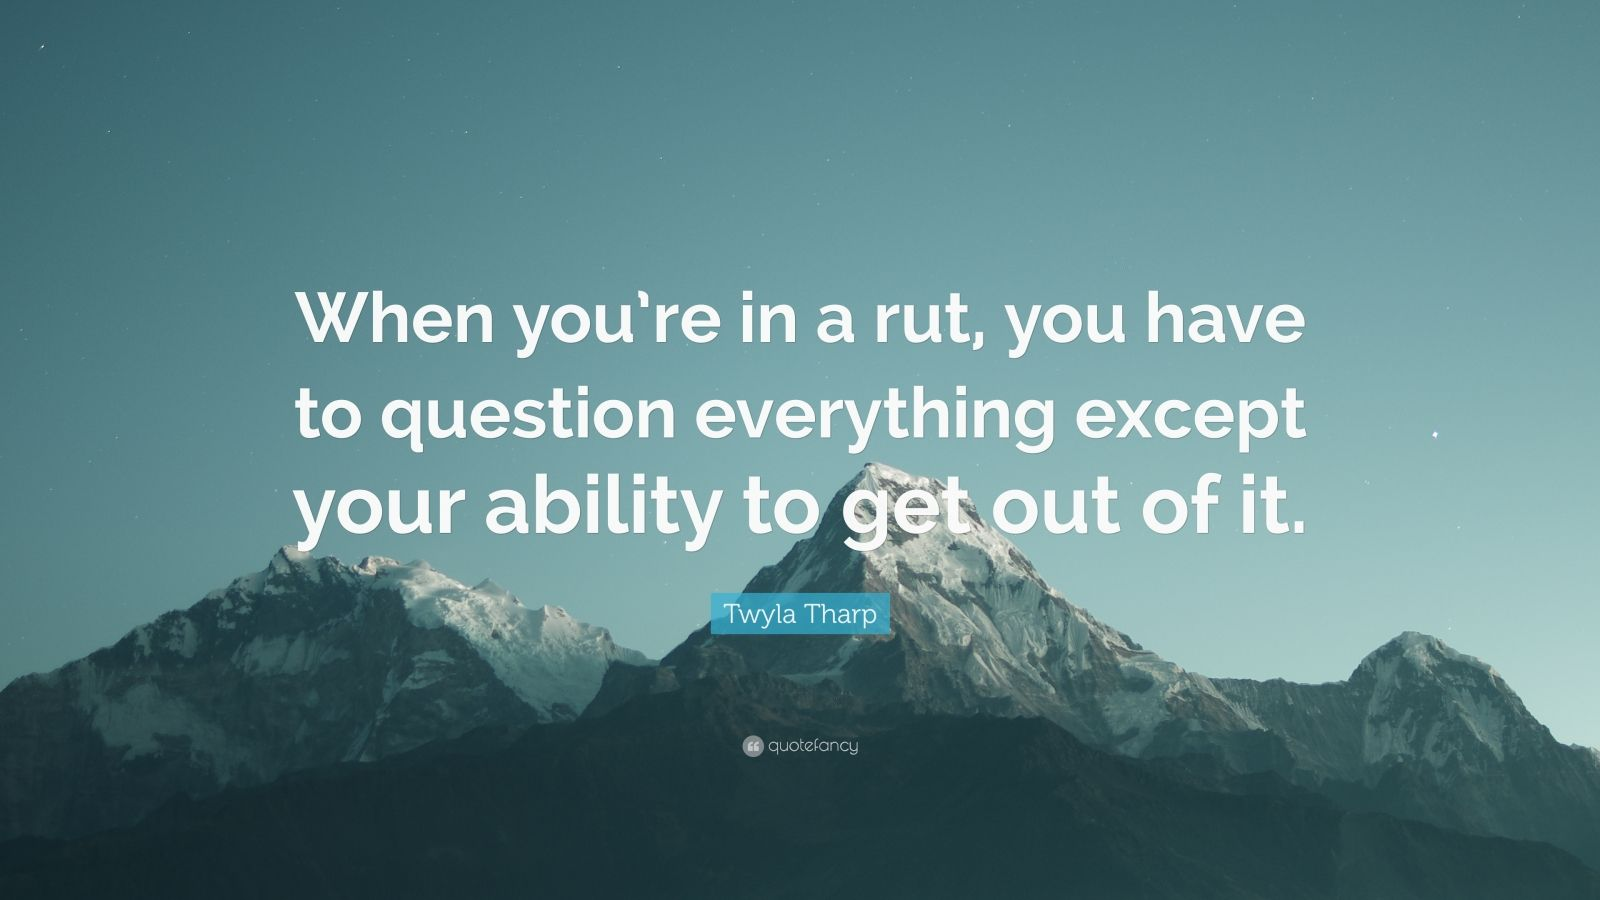 """Twyla Tharp Quote: """"When you're in a rut, you have to question everything except your ability to get out of it."""""""